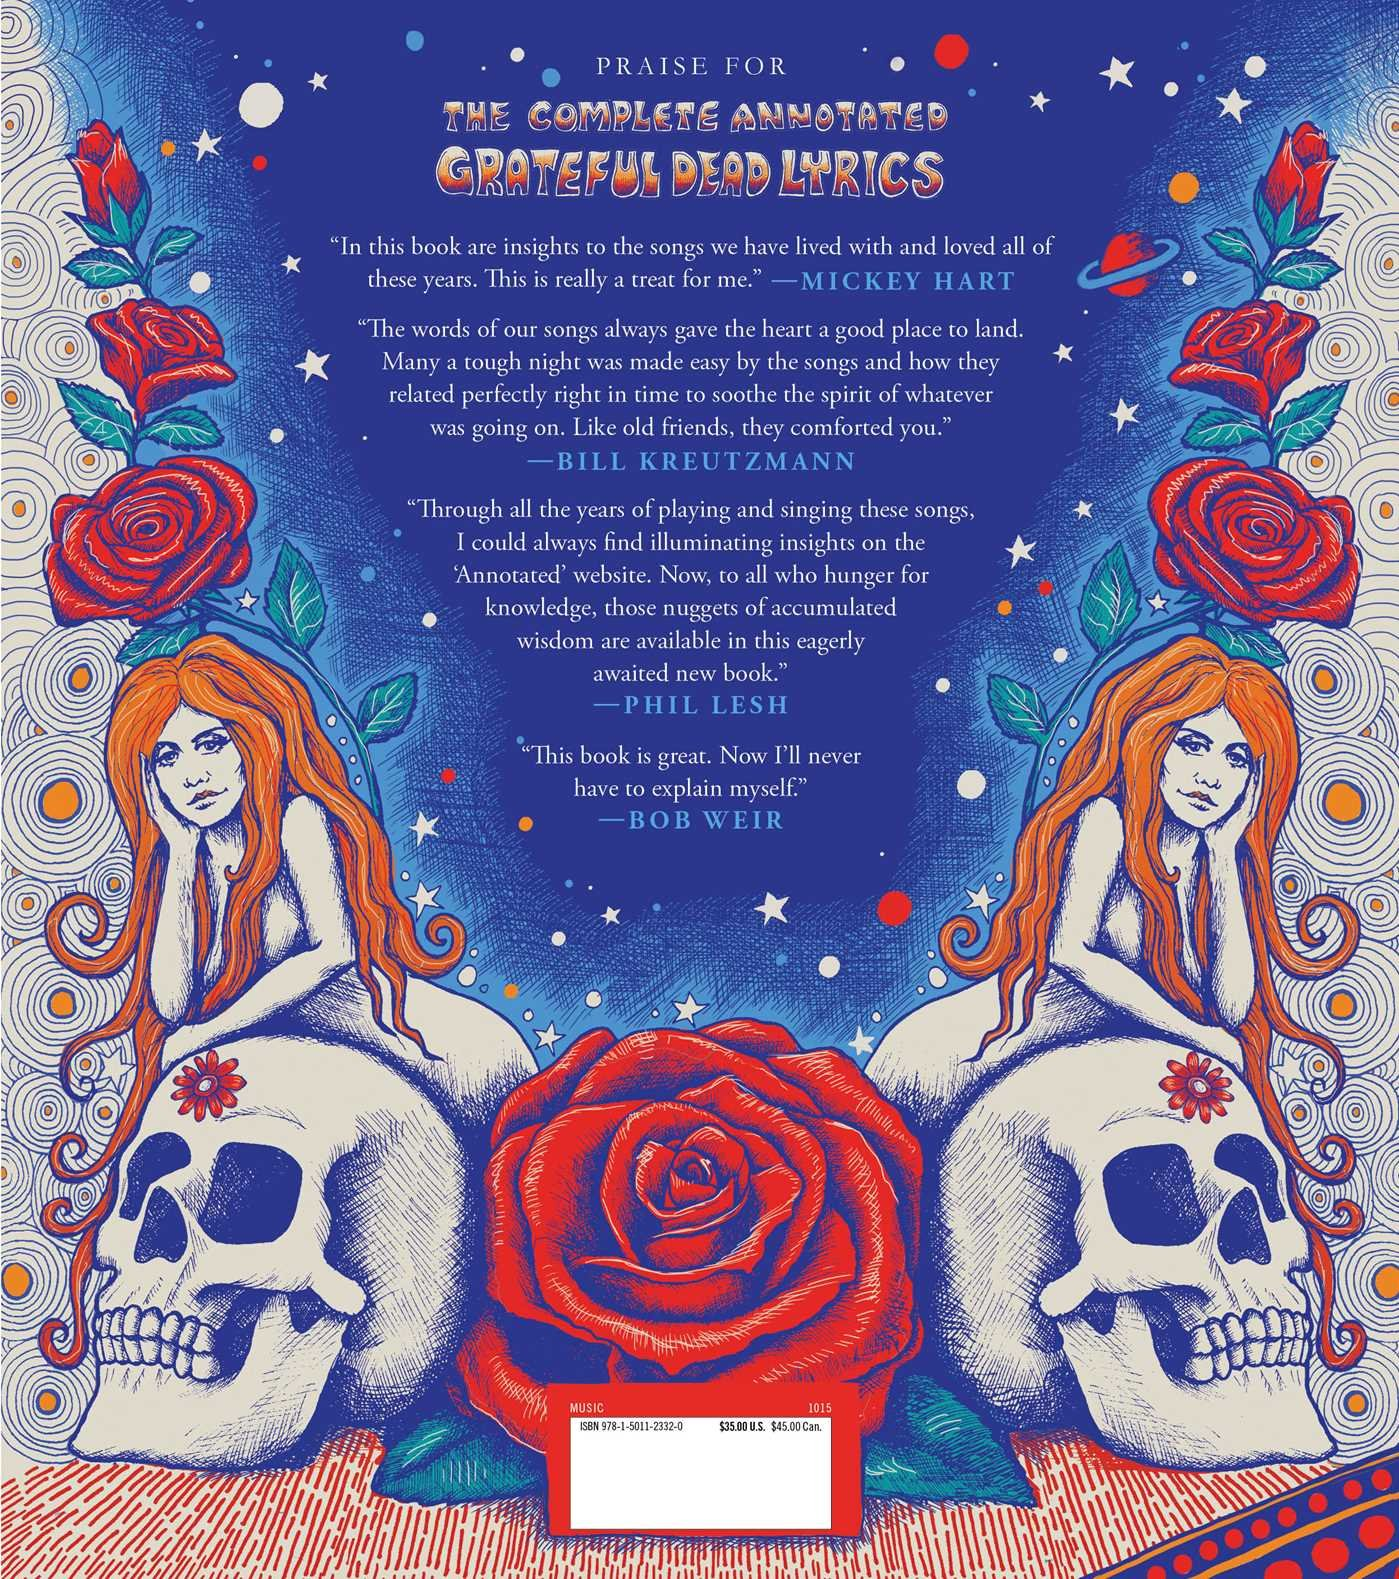 The Complete Annotated Grateful Dead Lyrics: David G. Dodd ...